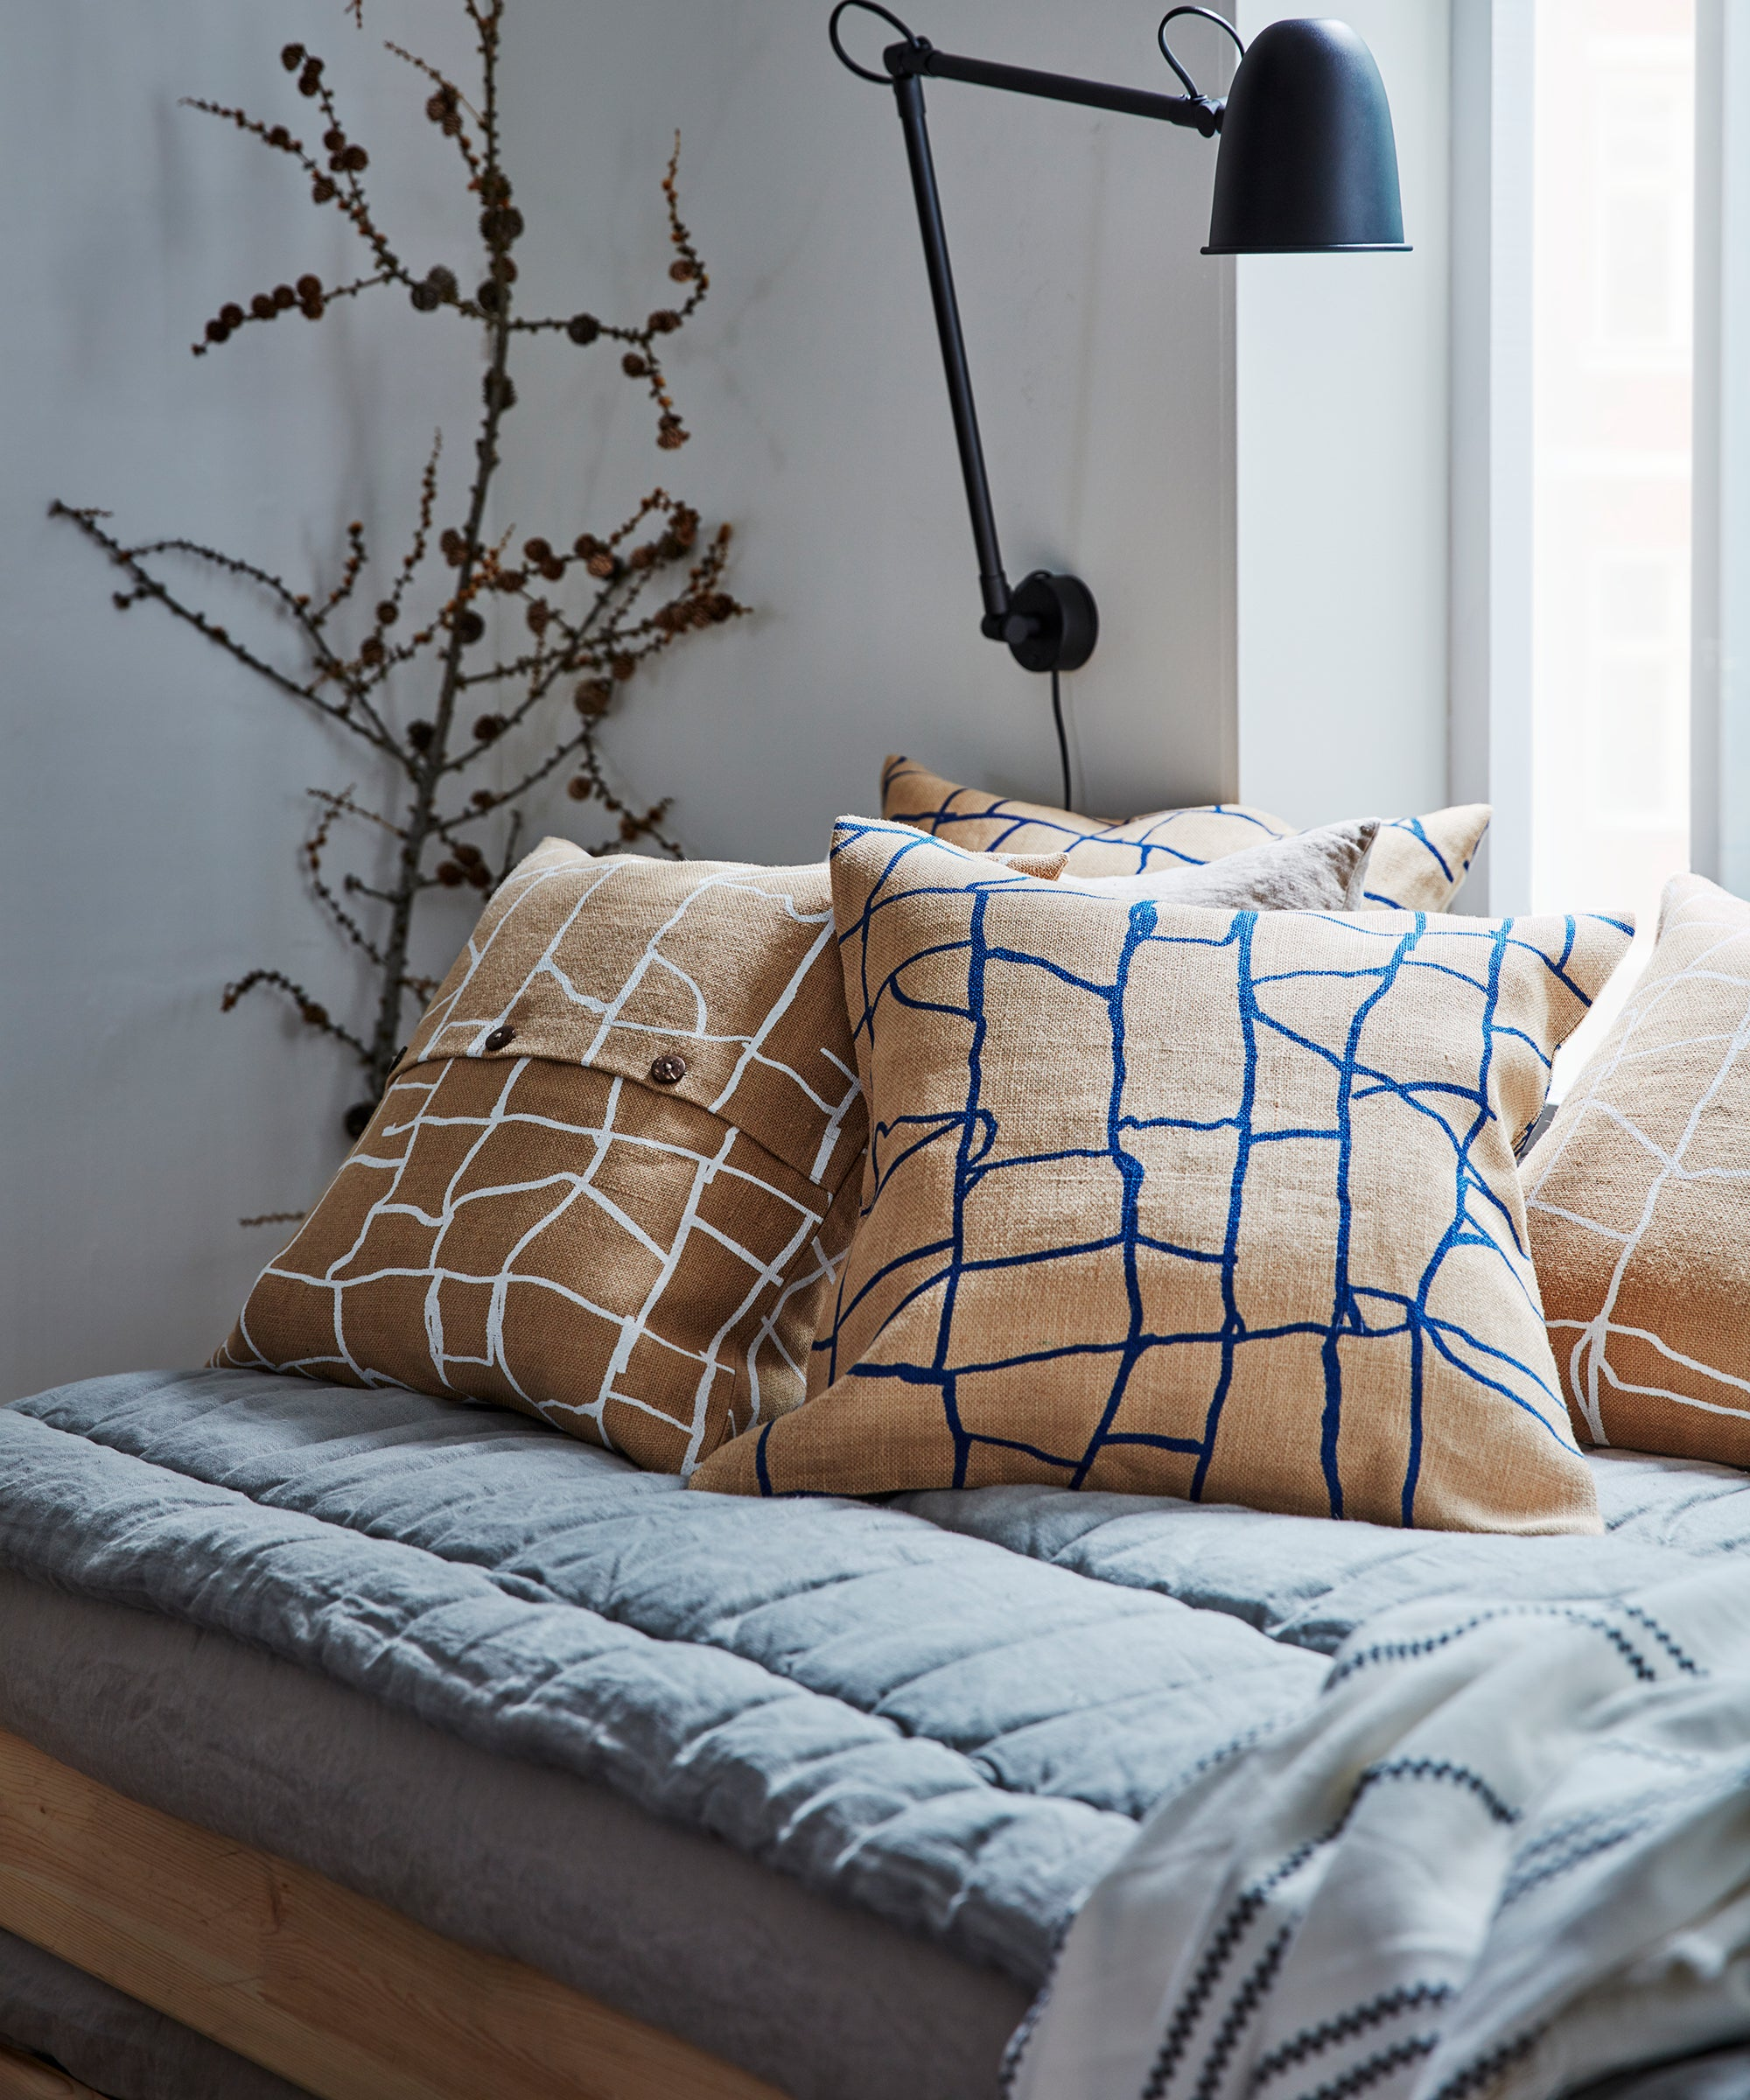 Ikea's New Collection Was Designed For Cool Weather Coziness